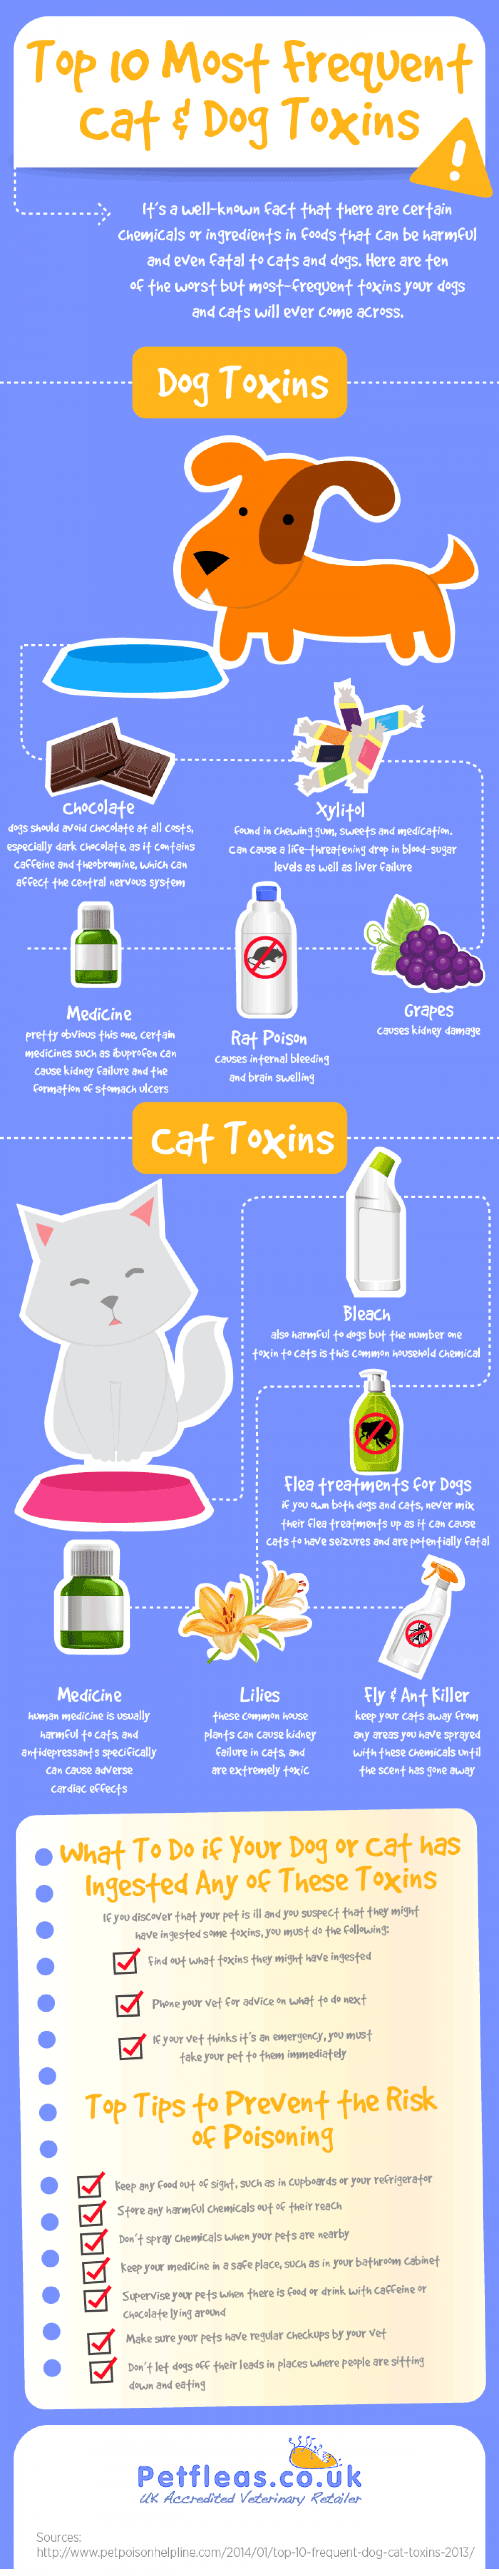 Top 10 Most Frequent Cat & Dog Toxins Infographic